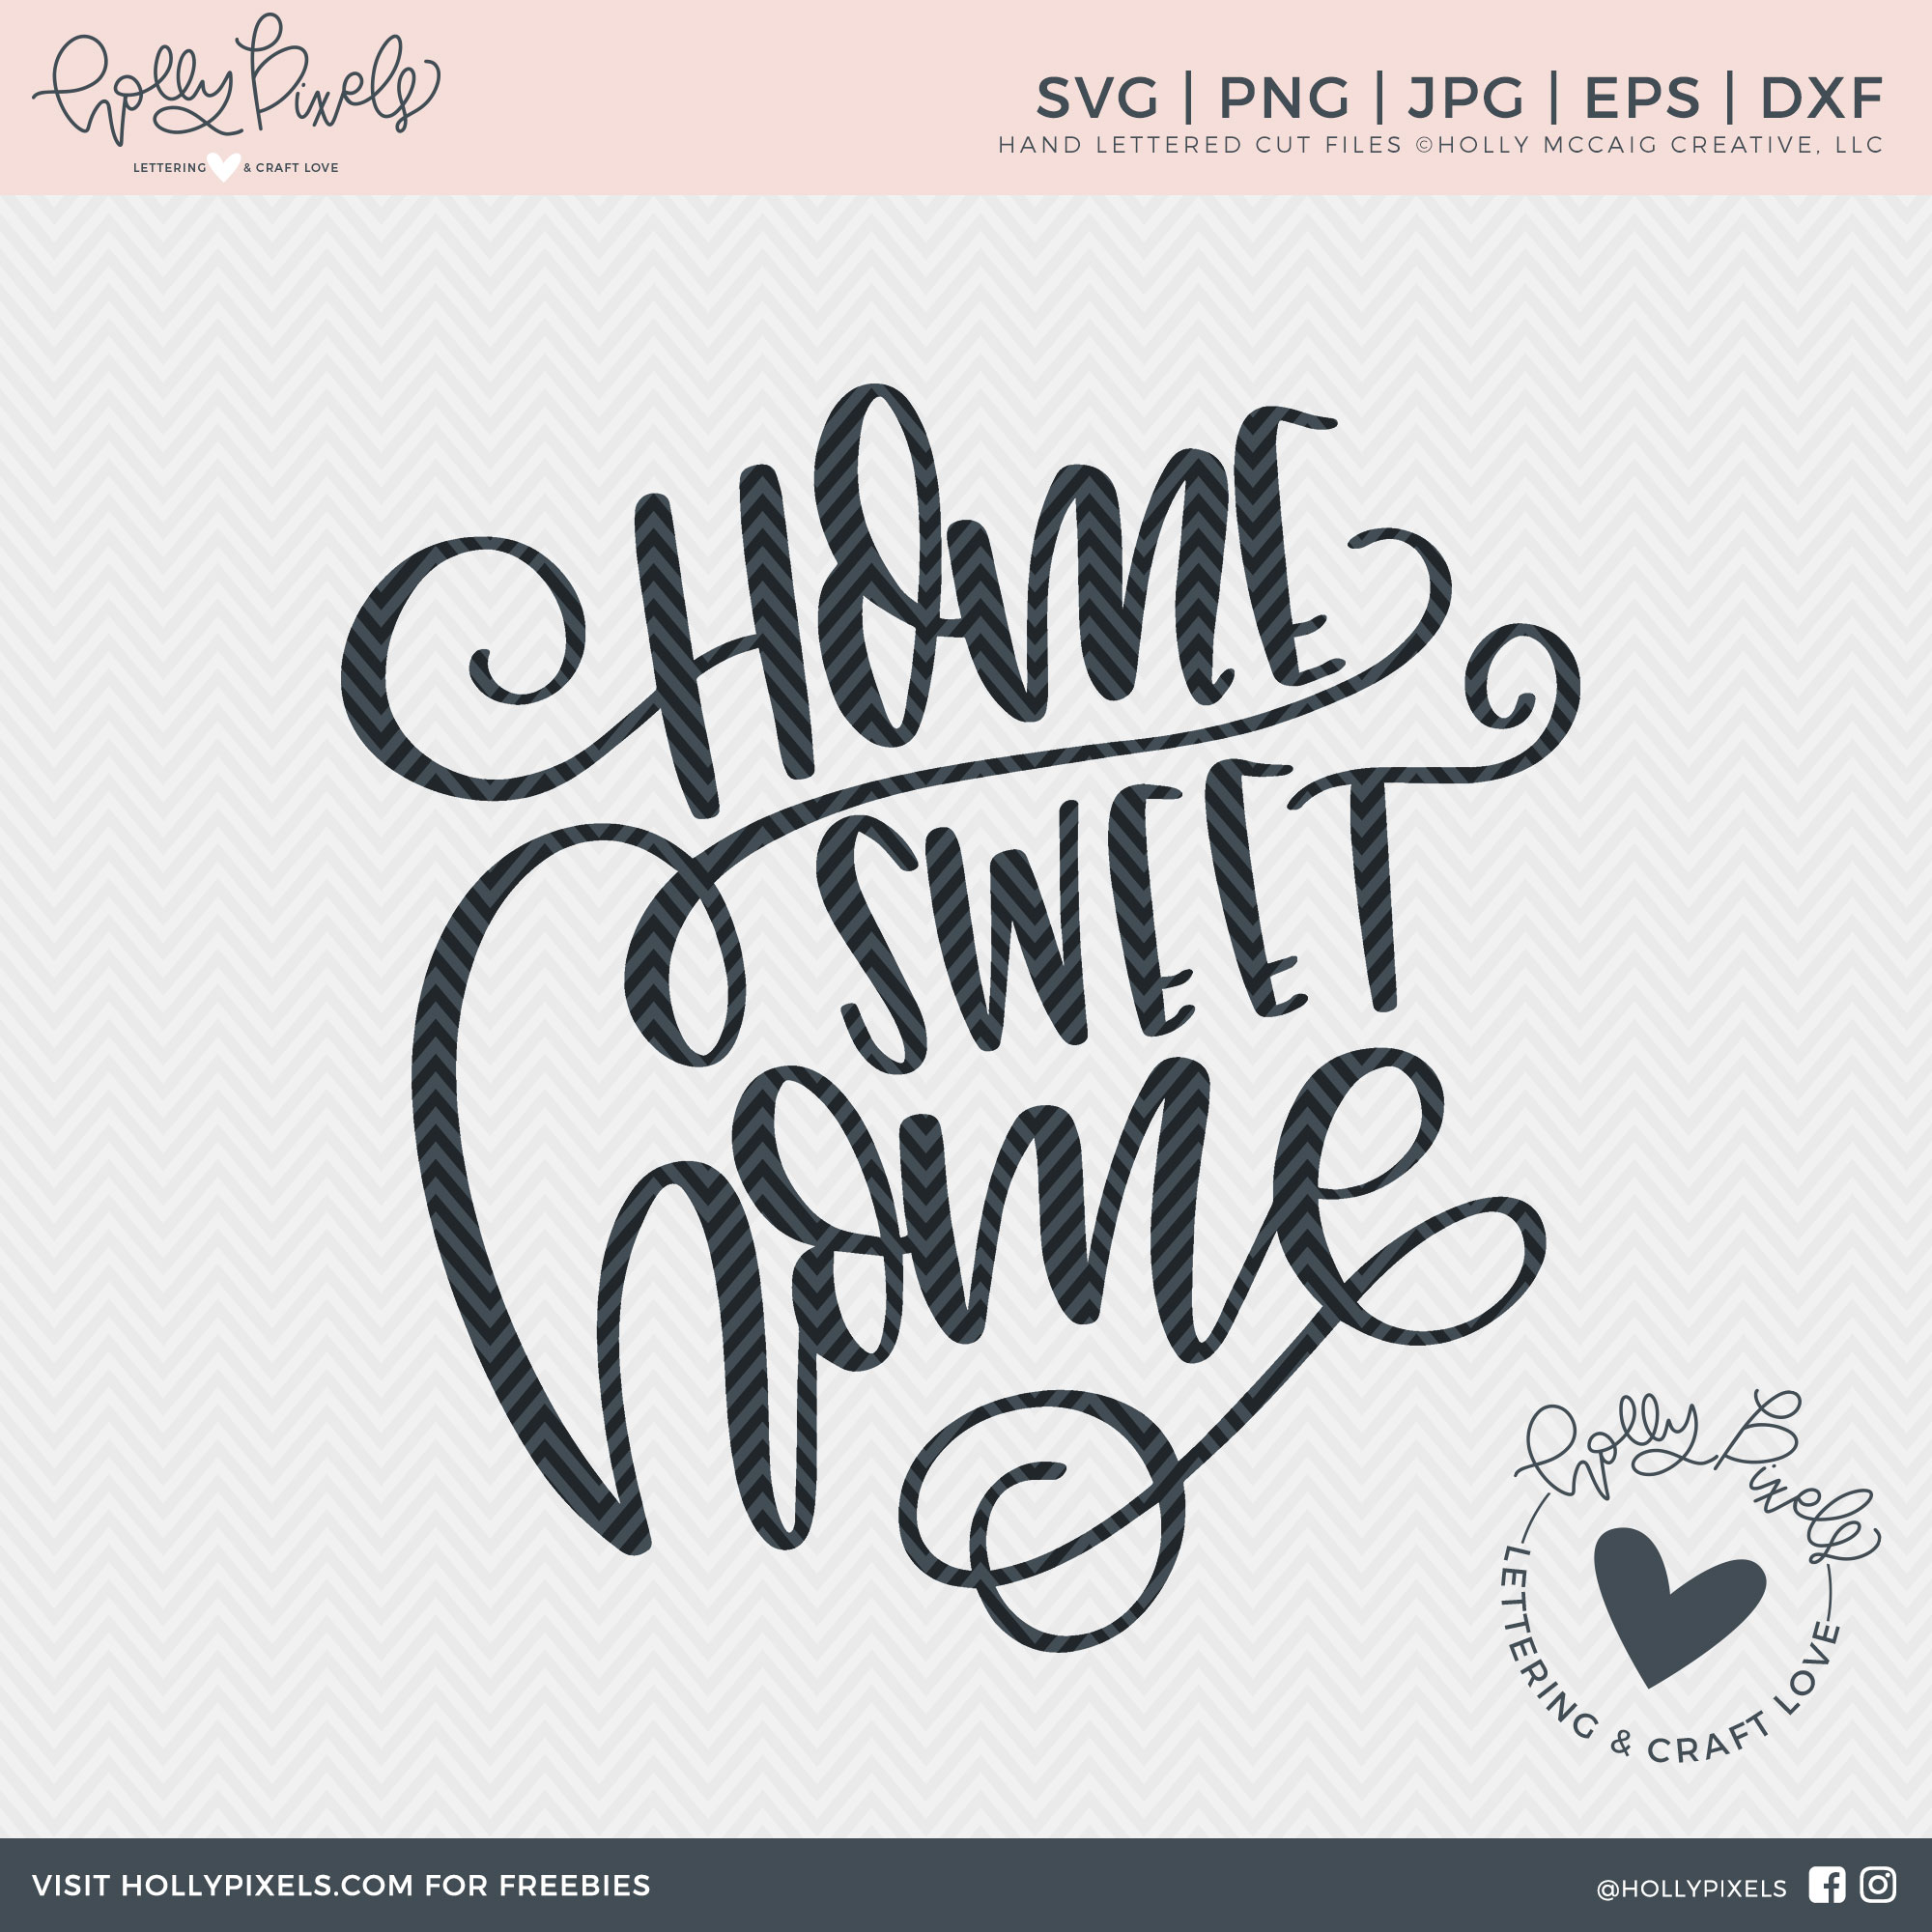 Home SVG | Home Sweet Home SVG | Family SVG | Housewarming SVG ...